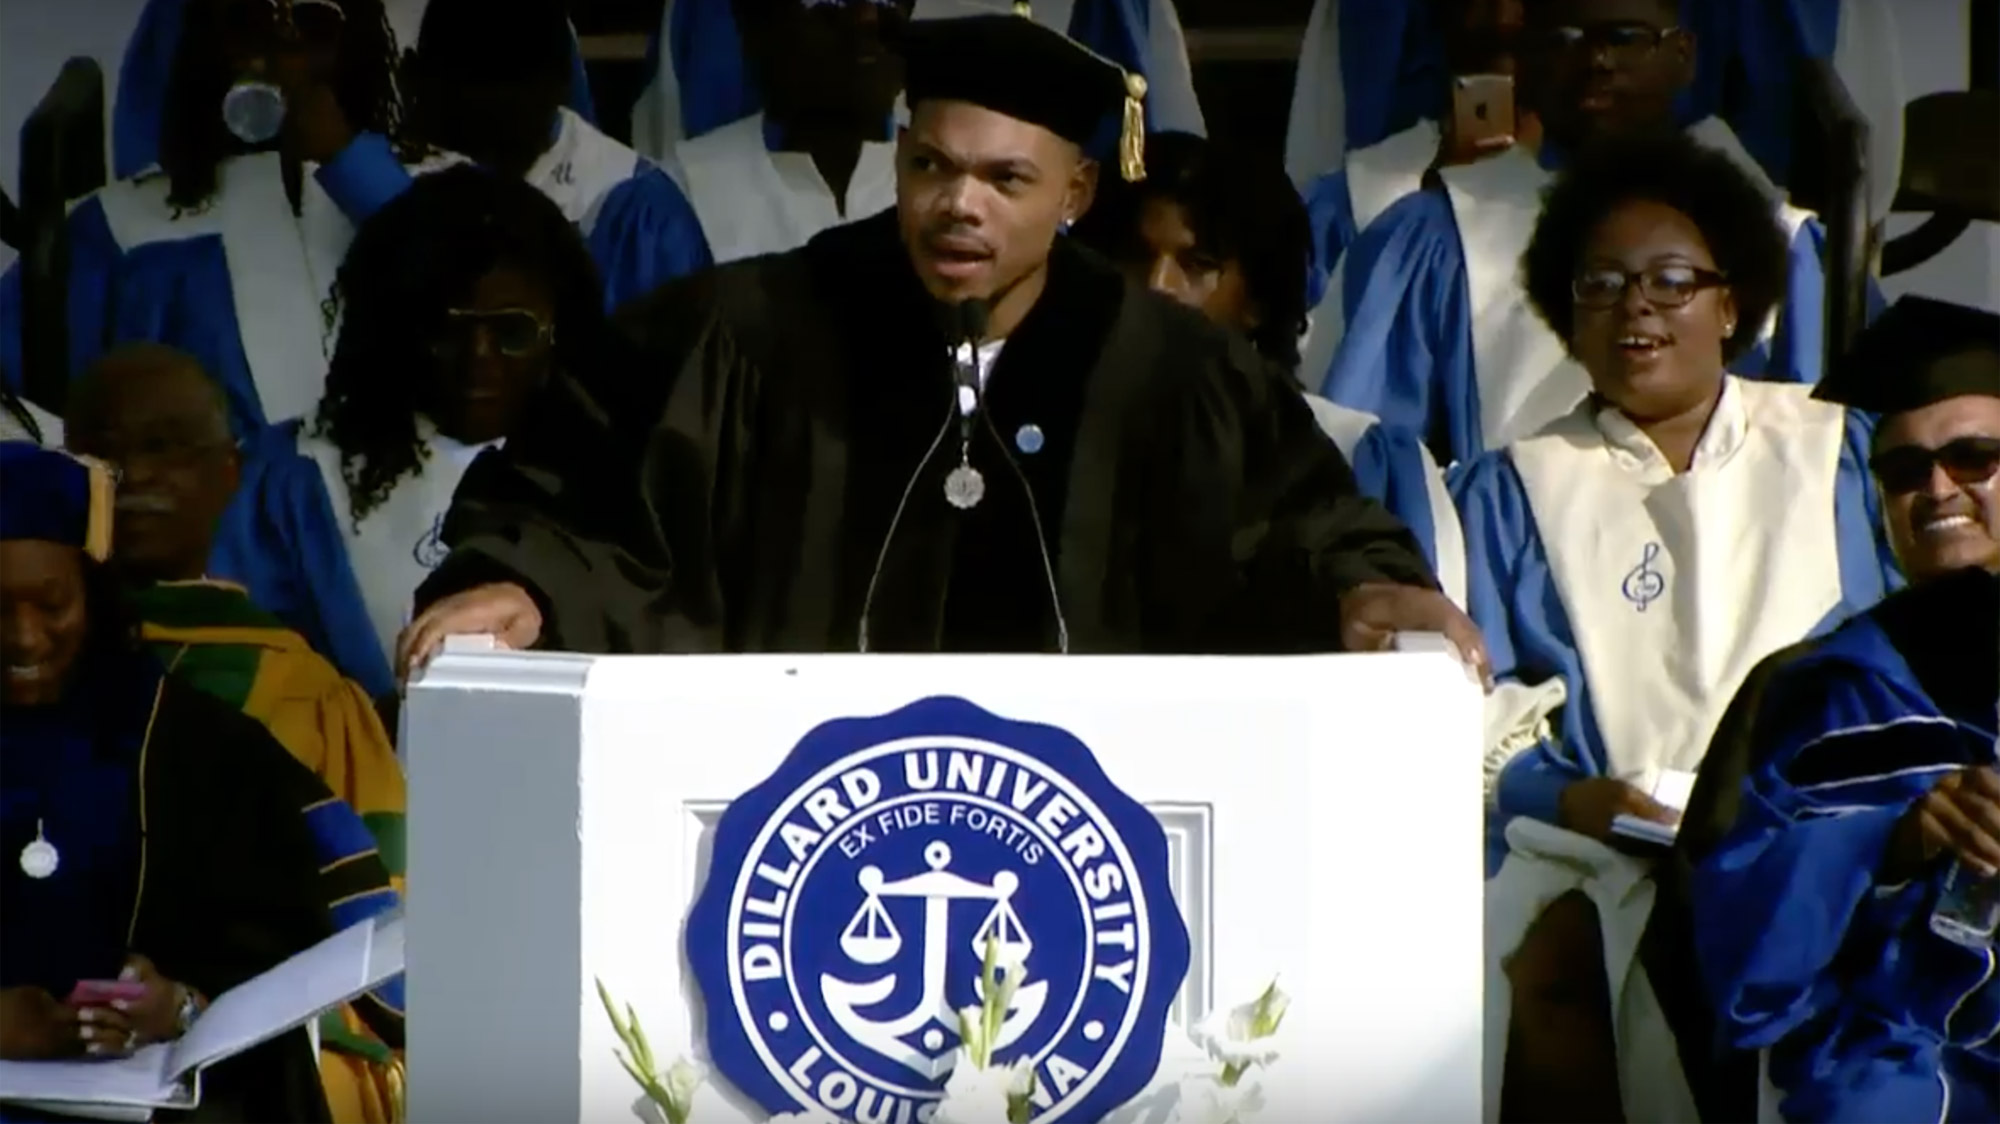 Chance the Rapper challenges Dillard University graduates to 'eclipse our heroes'